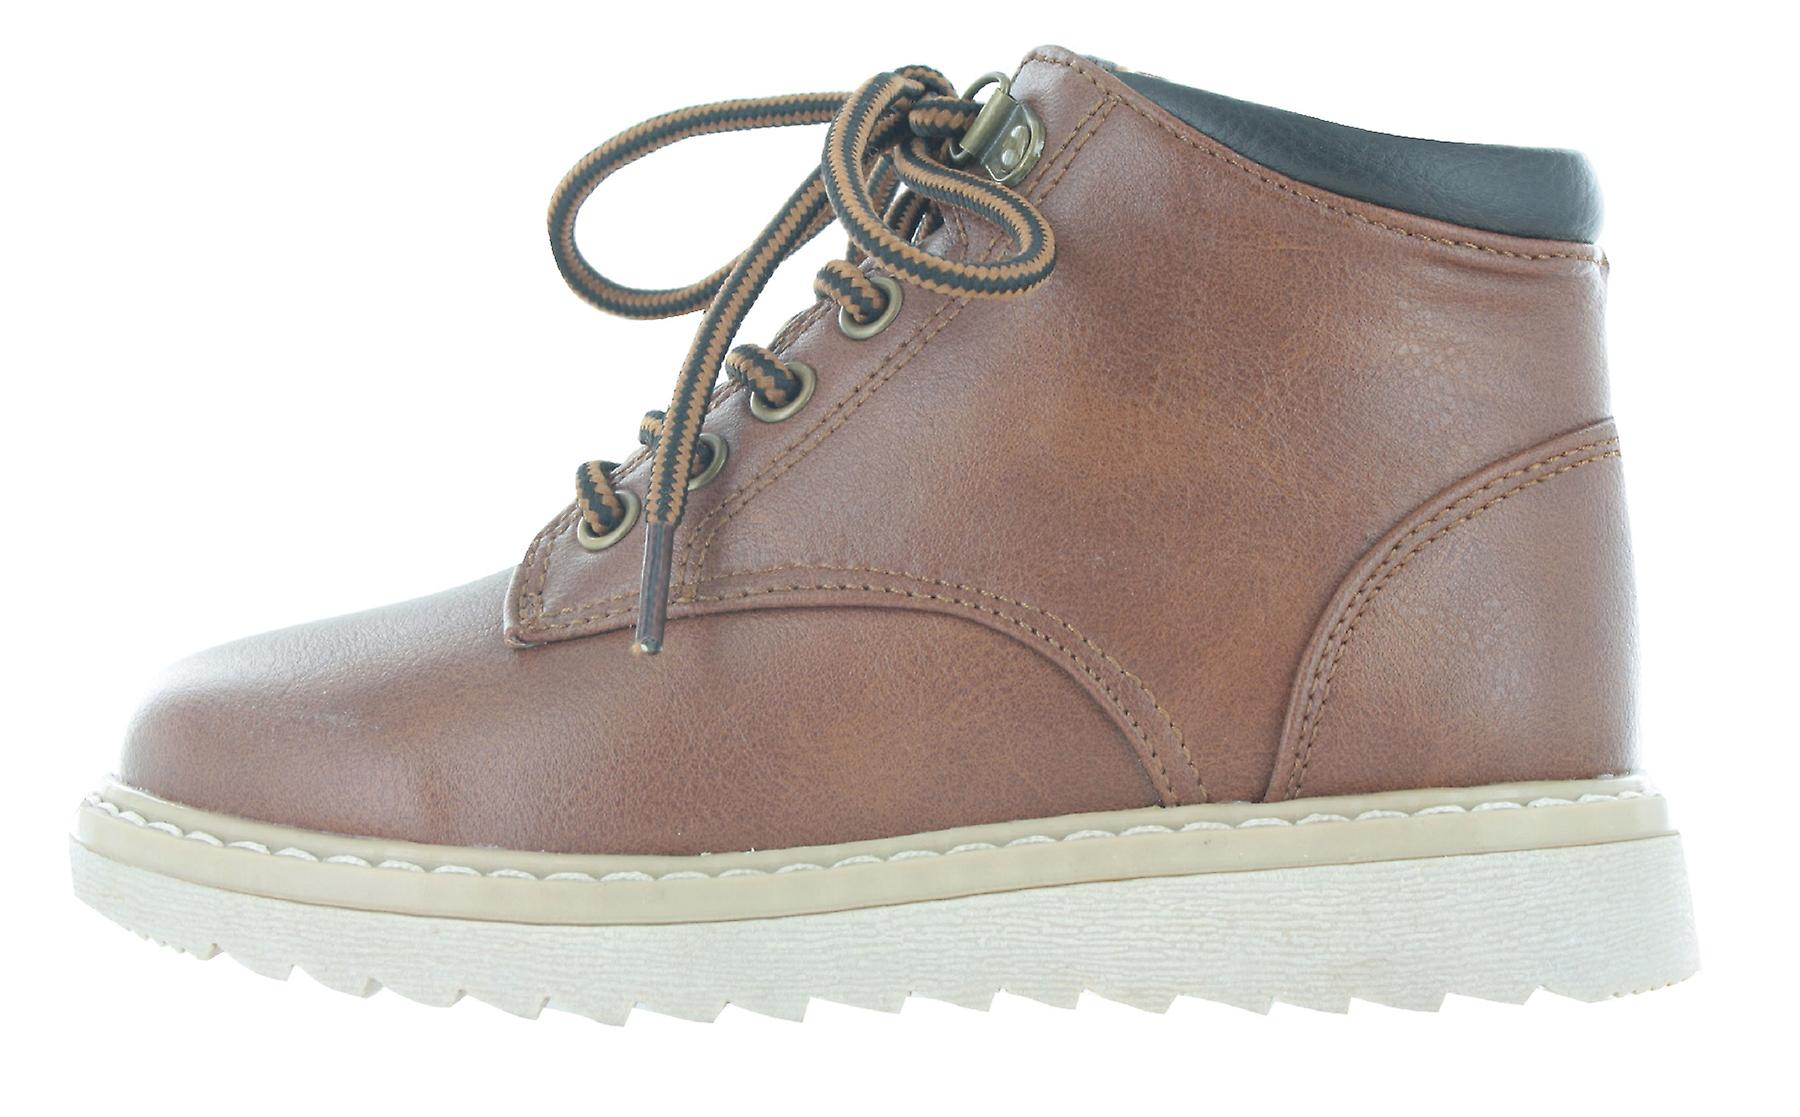 Boys Buckle My Shoe Brown to Tan Ankle Boots Back to Brown School Zip Up Various Sizes fe26ce